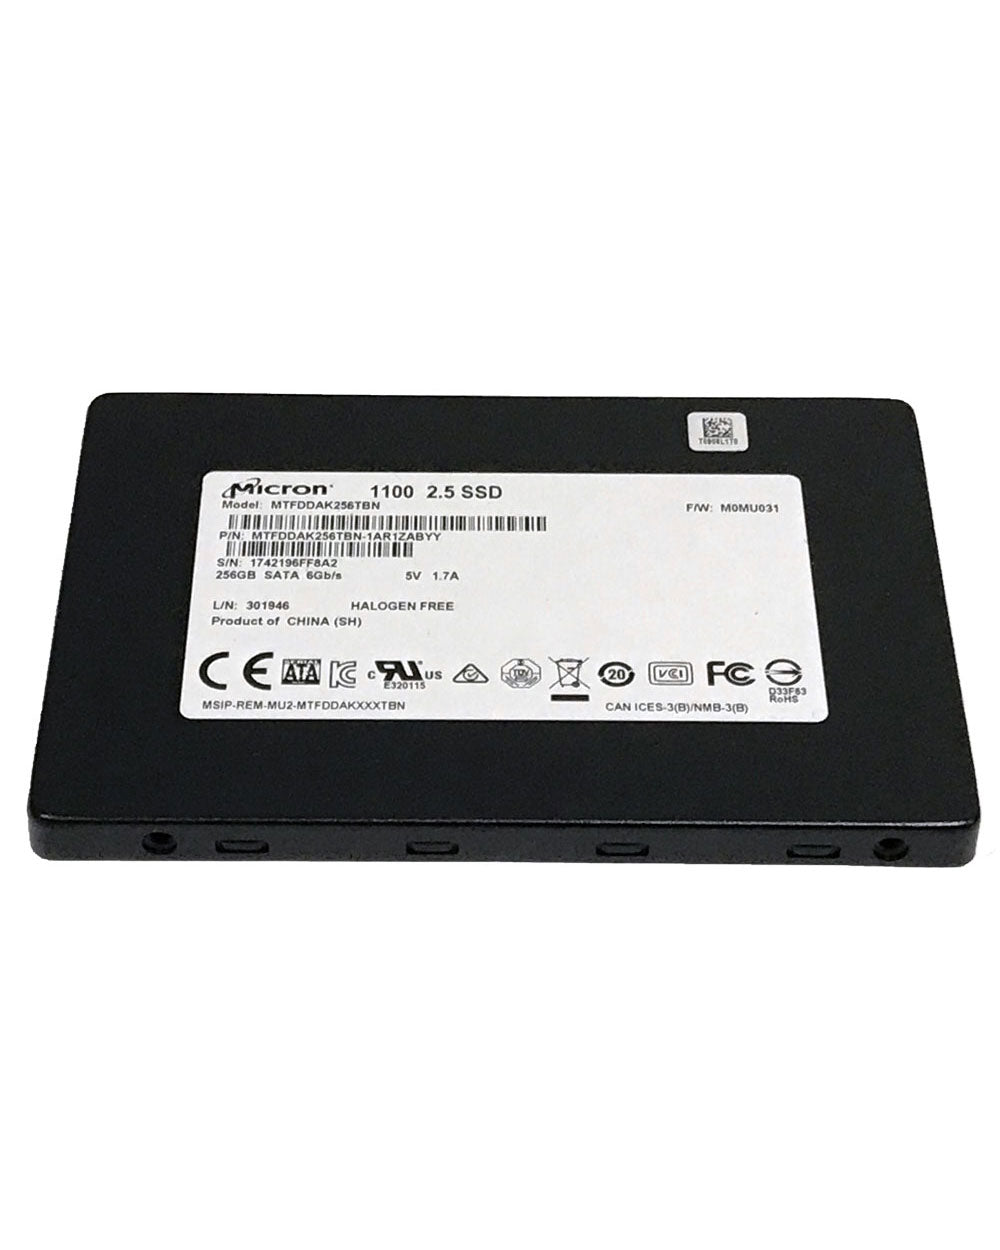 "256GB - Micron 1100 2.5"" Internal Solid State Drive"